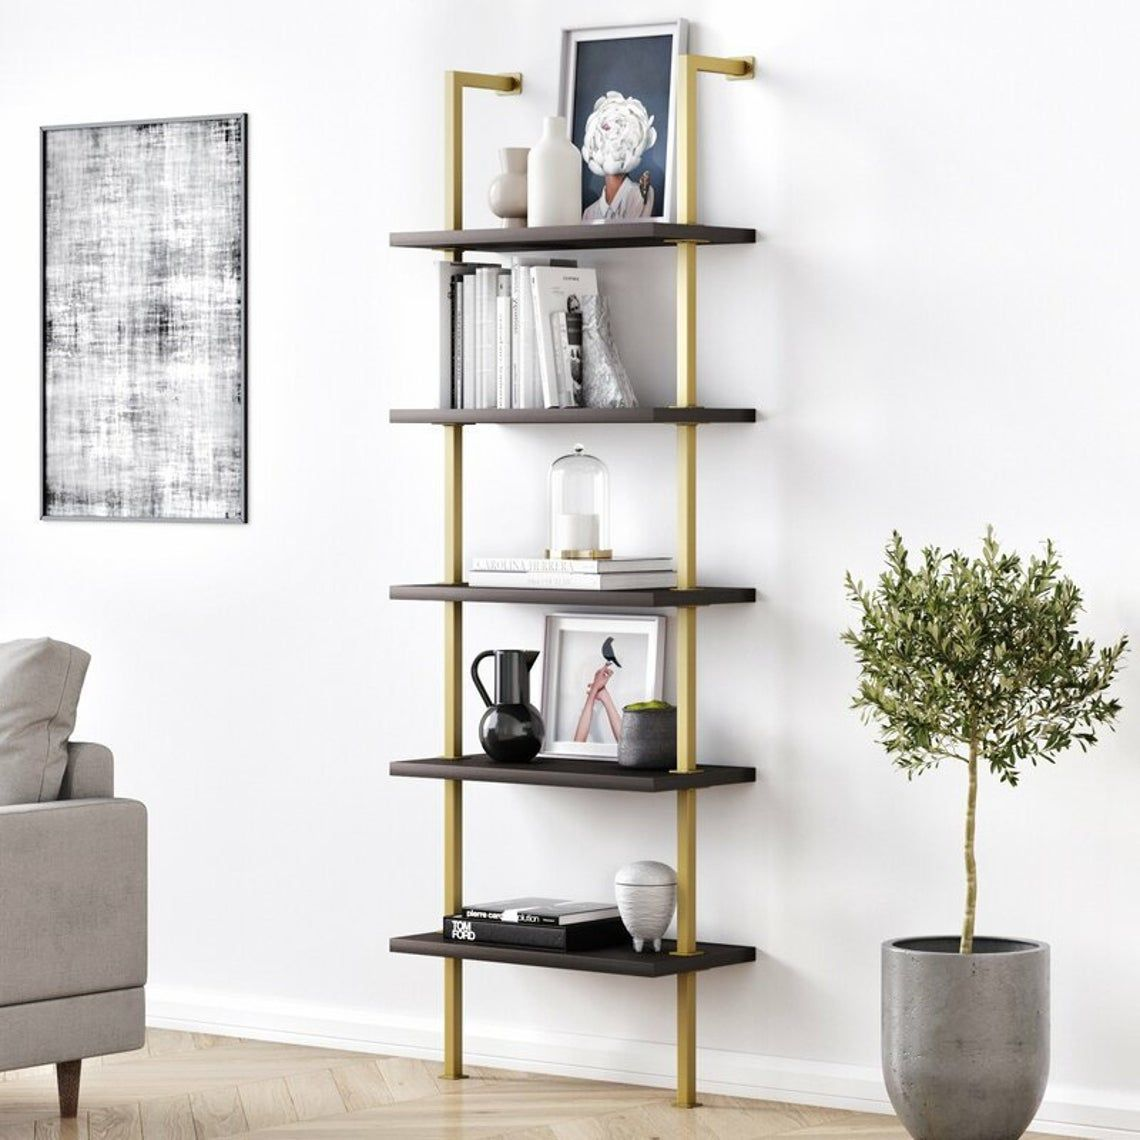 Industrial Ladder Shelf 5 Tier Wood Wall Mounted Bookcase Etsy In 2021 Modern Shelving Wall Mounted Bookshelves Ladder Bookcase Metal and wood ladder shelf